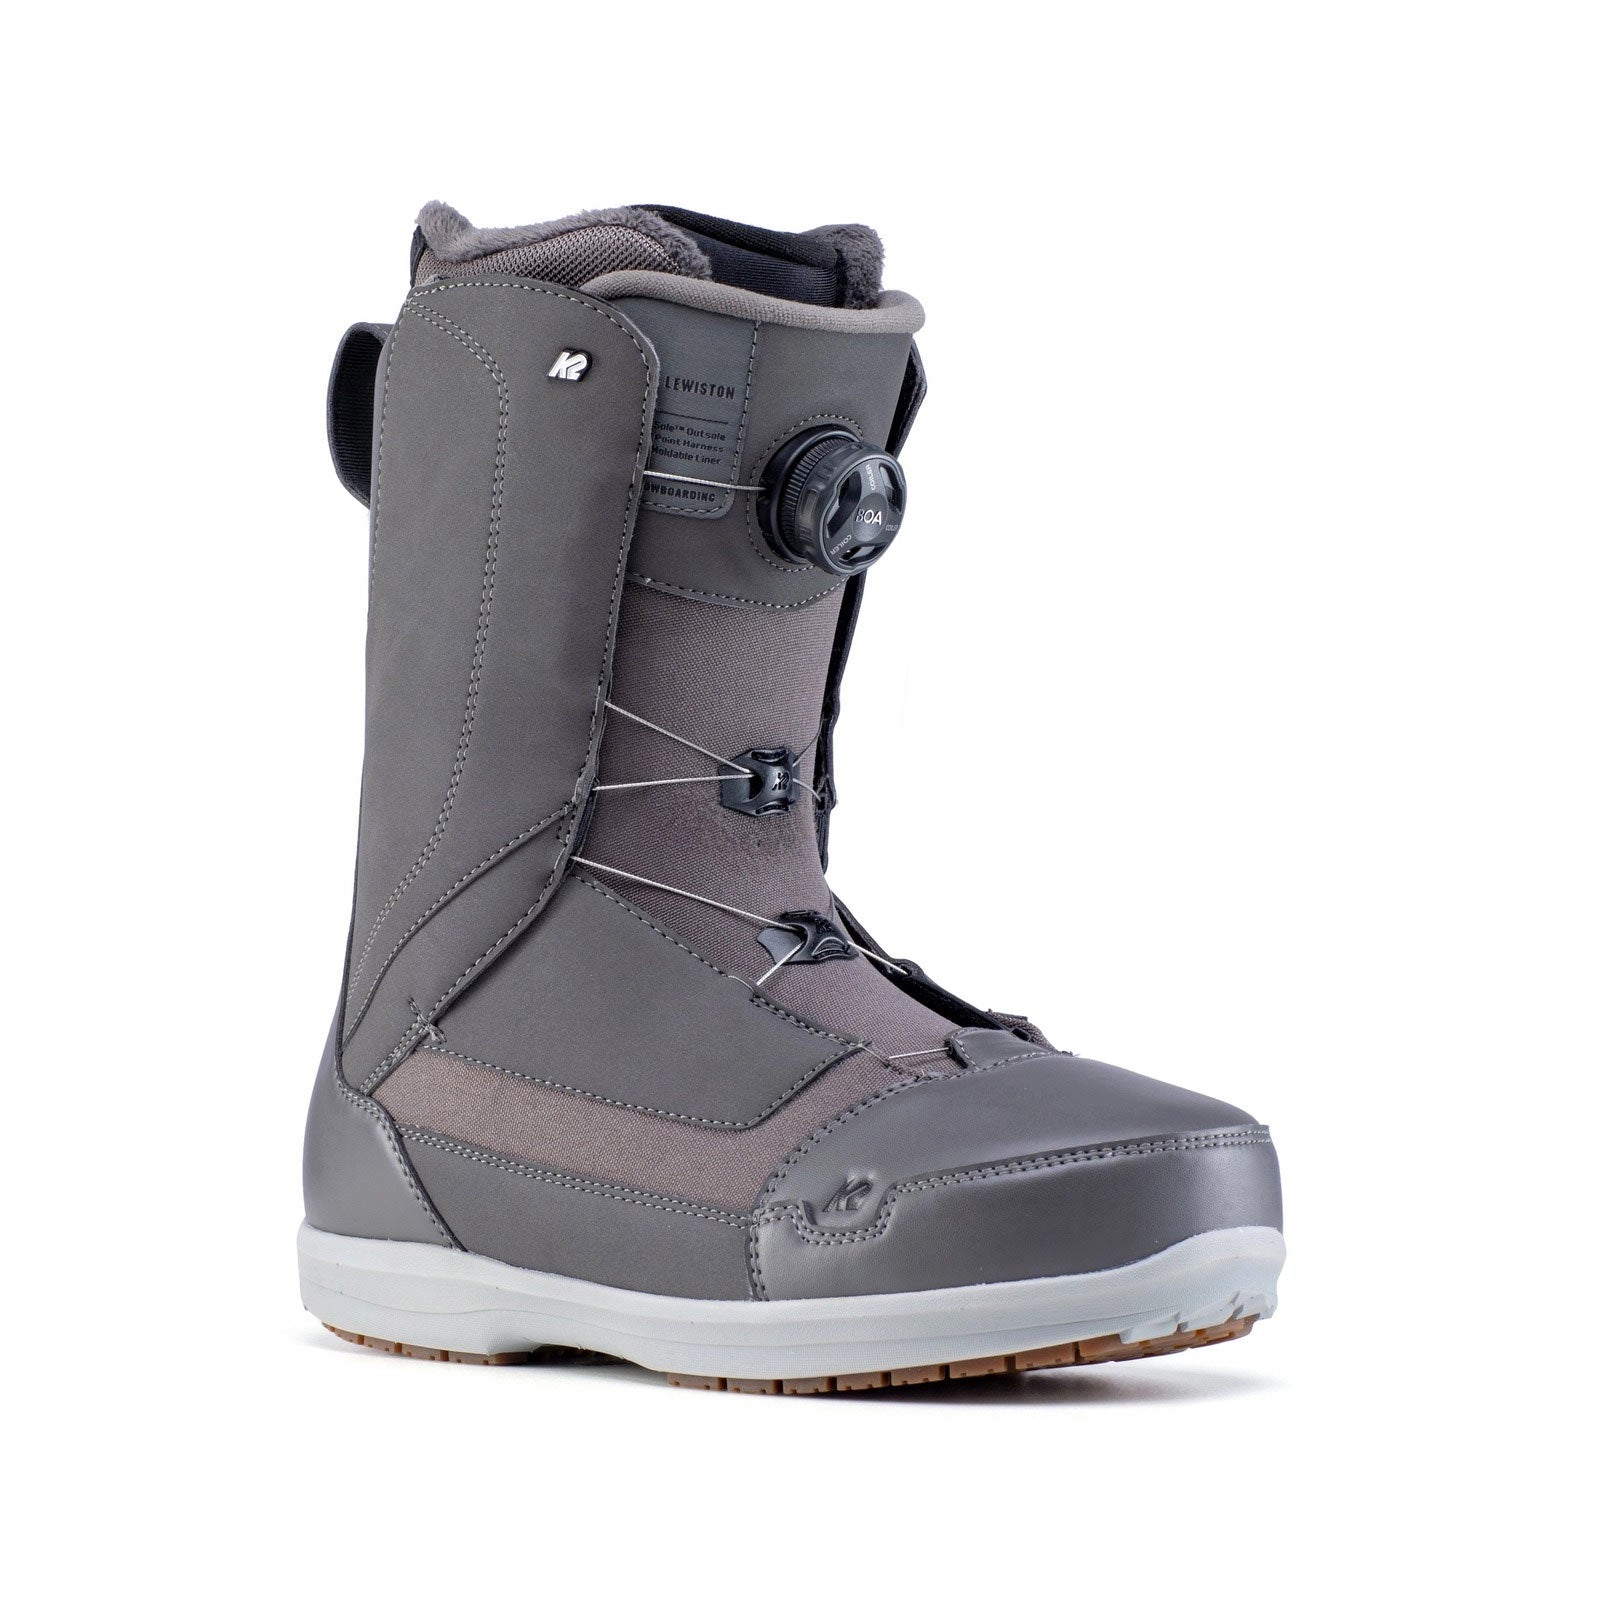 K2 2020 Lewiston Snowboard Boot